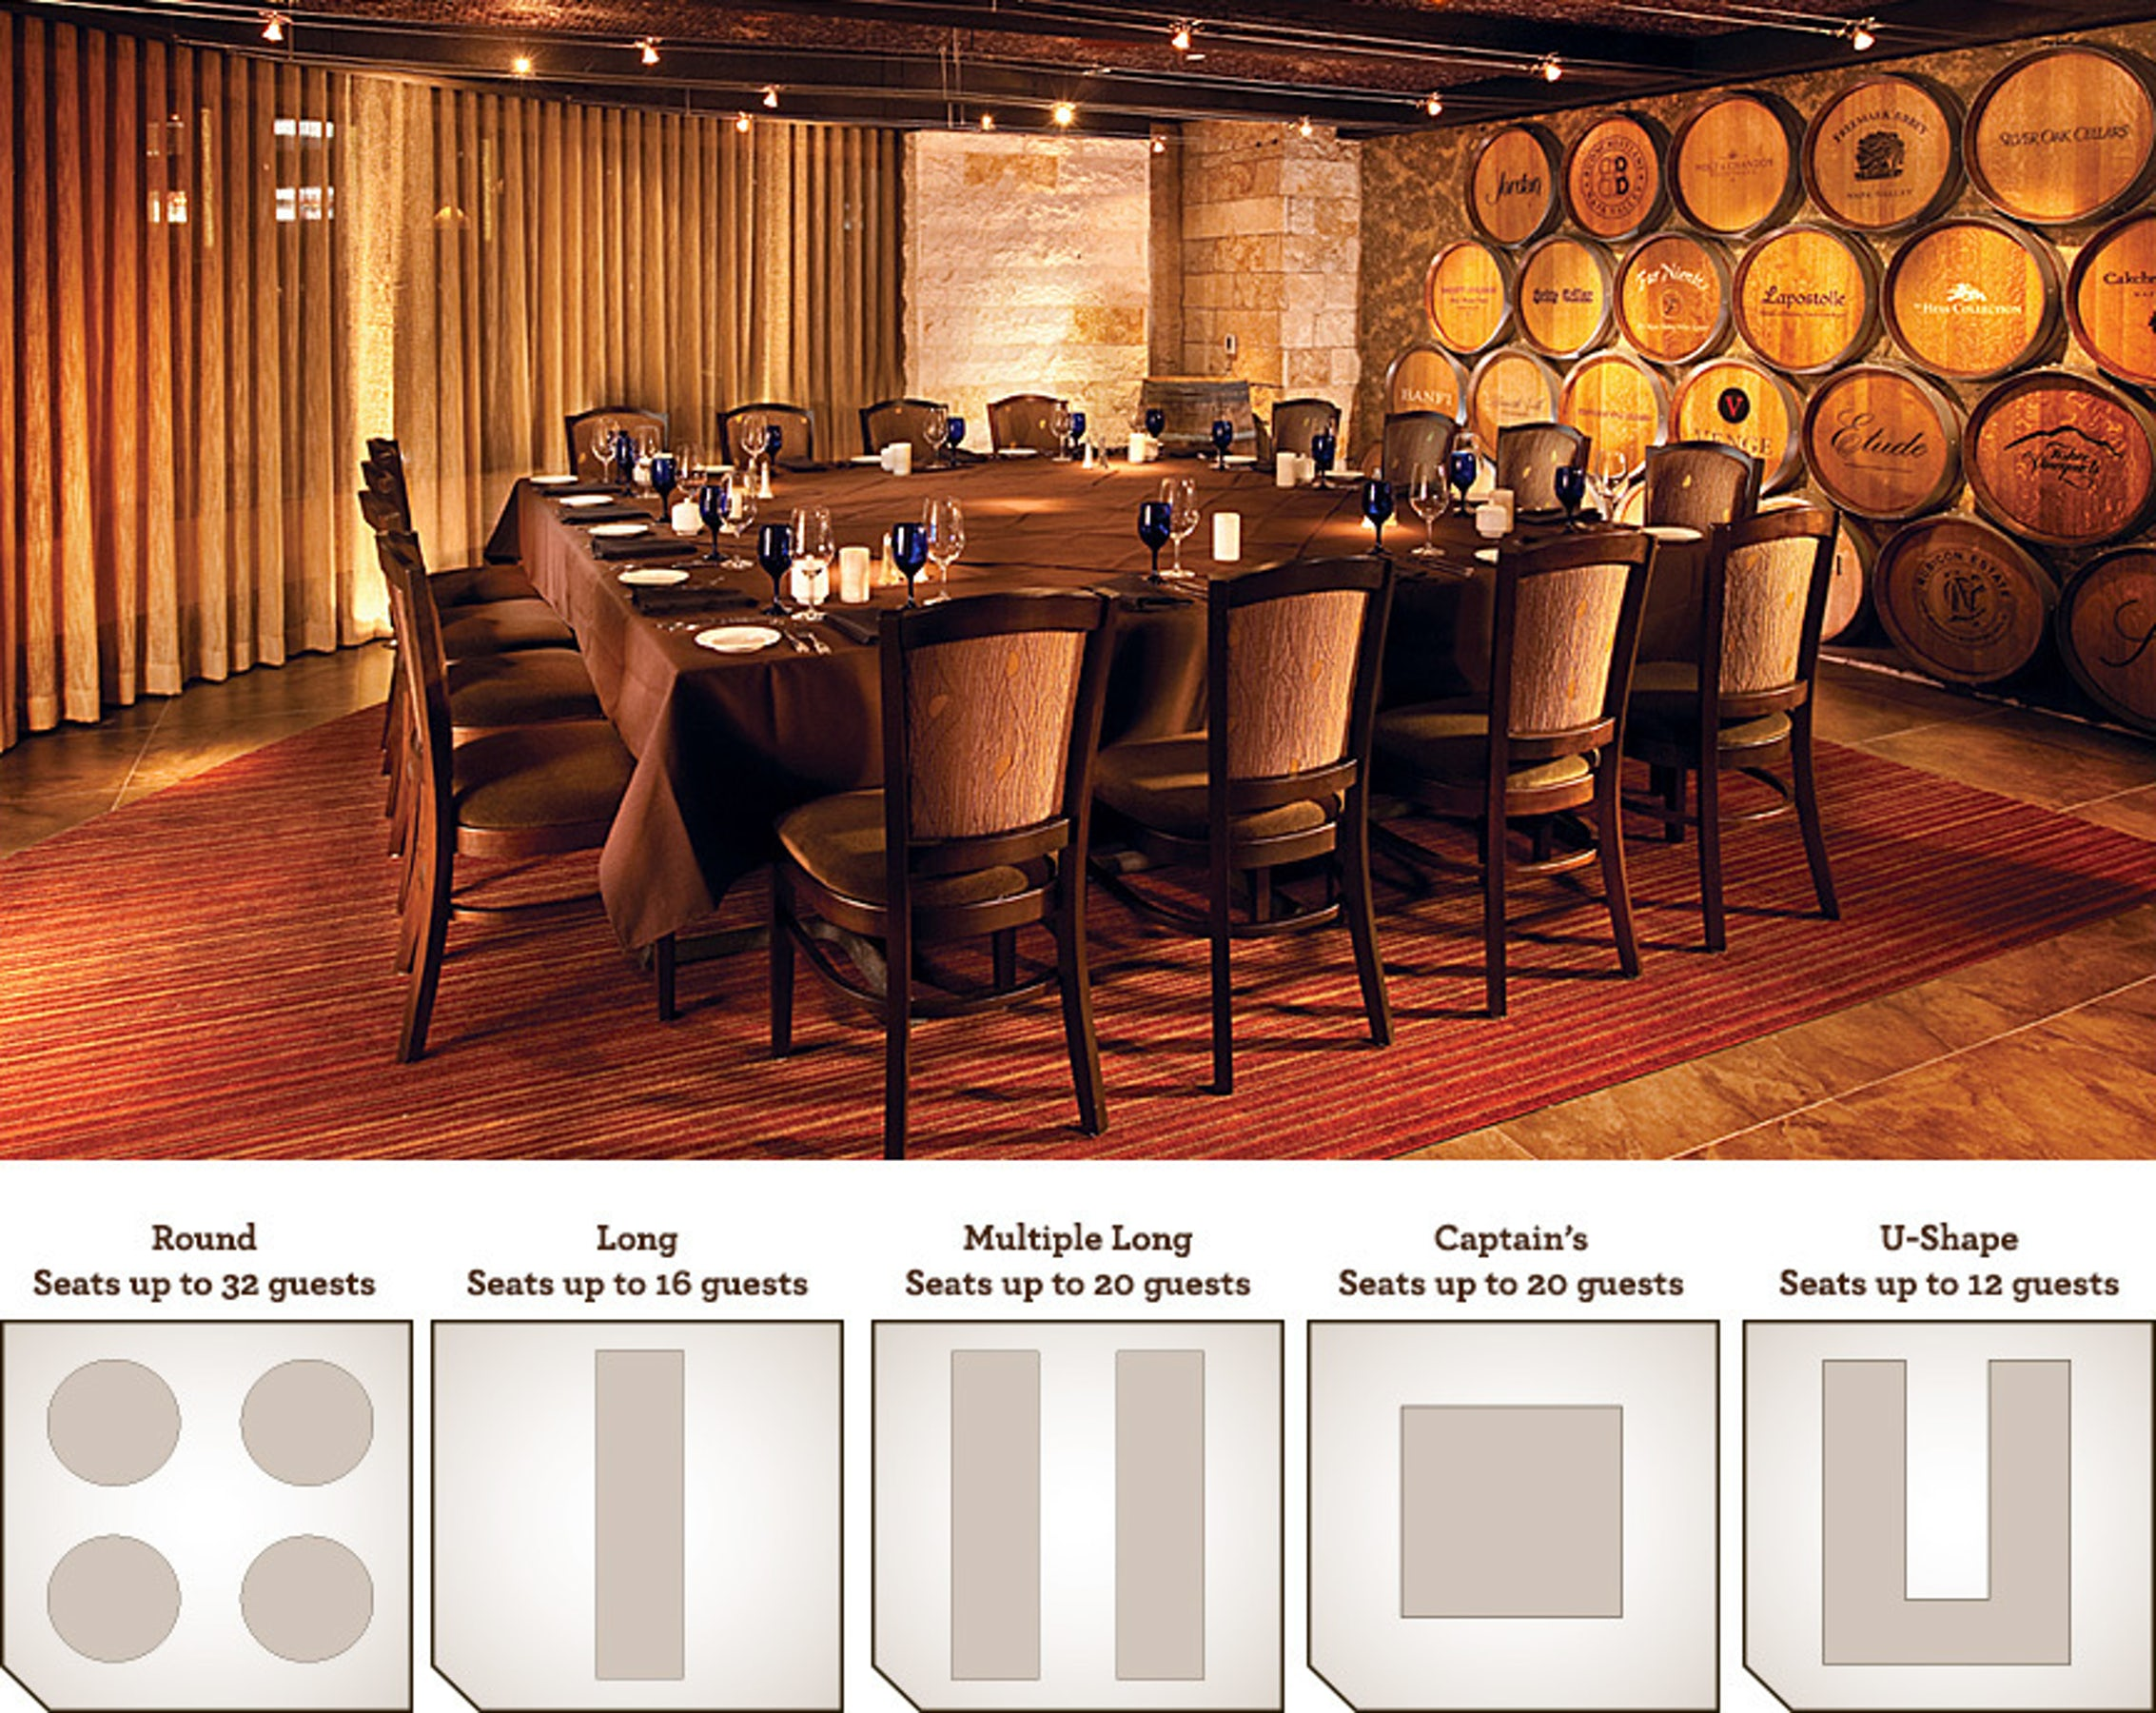 Perry's Steakhouse & Grille in Beyond Dallas